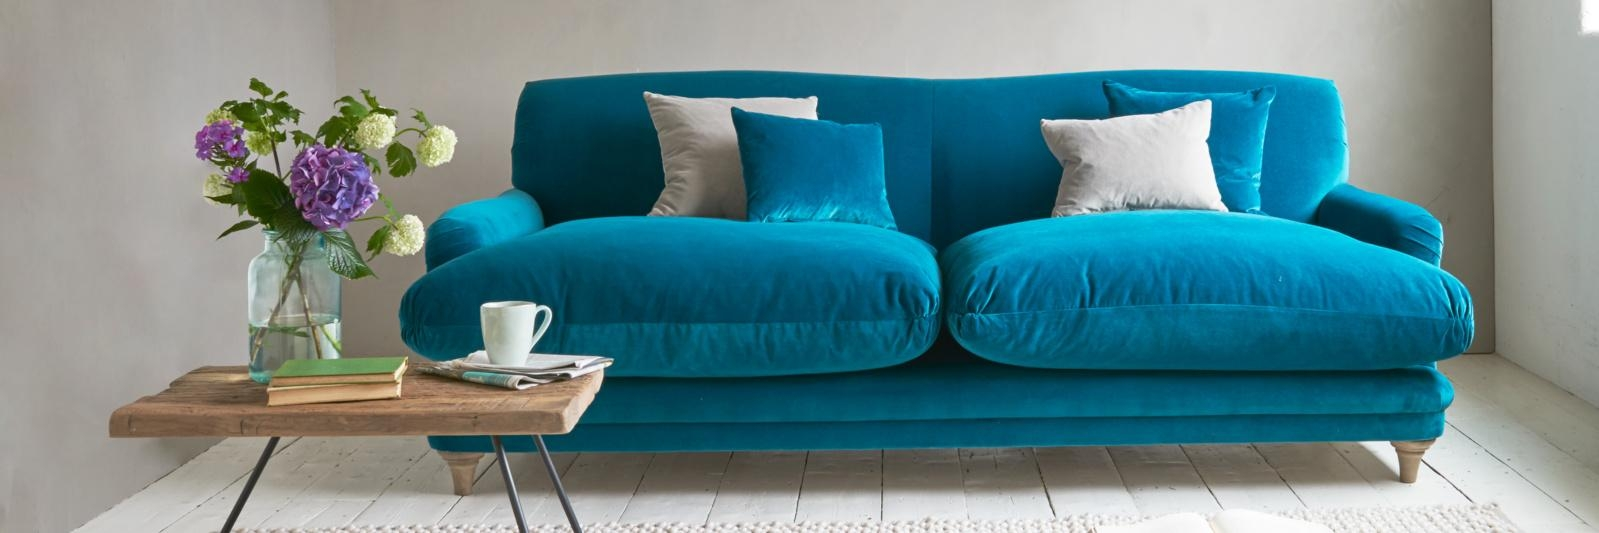 Sofas Center : Teal Blue Sofa Navy Couch Designs Sofas Pillowsteal Intended For Blue Sofas (Image 20 of 20)